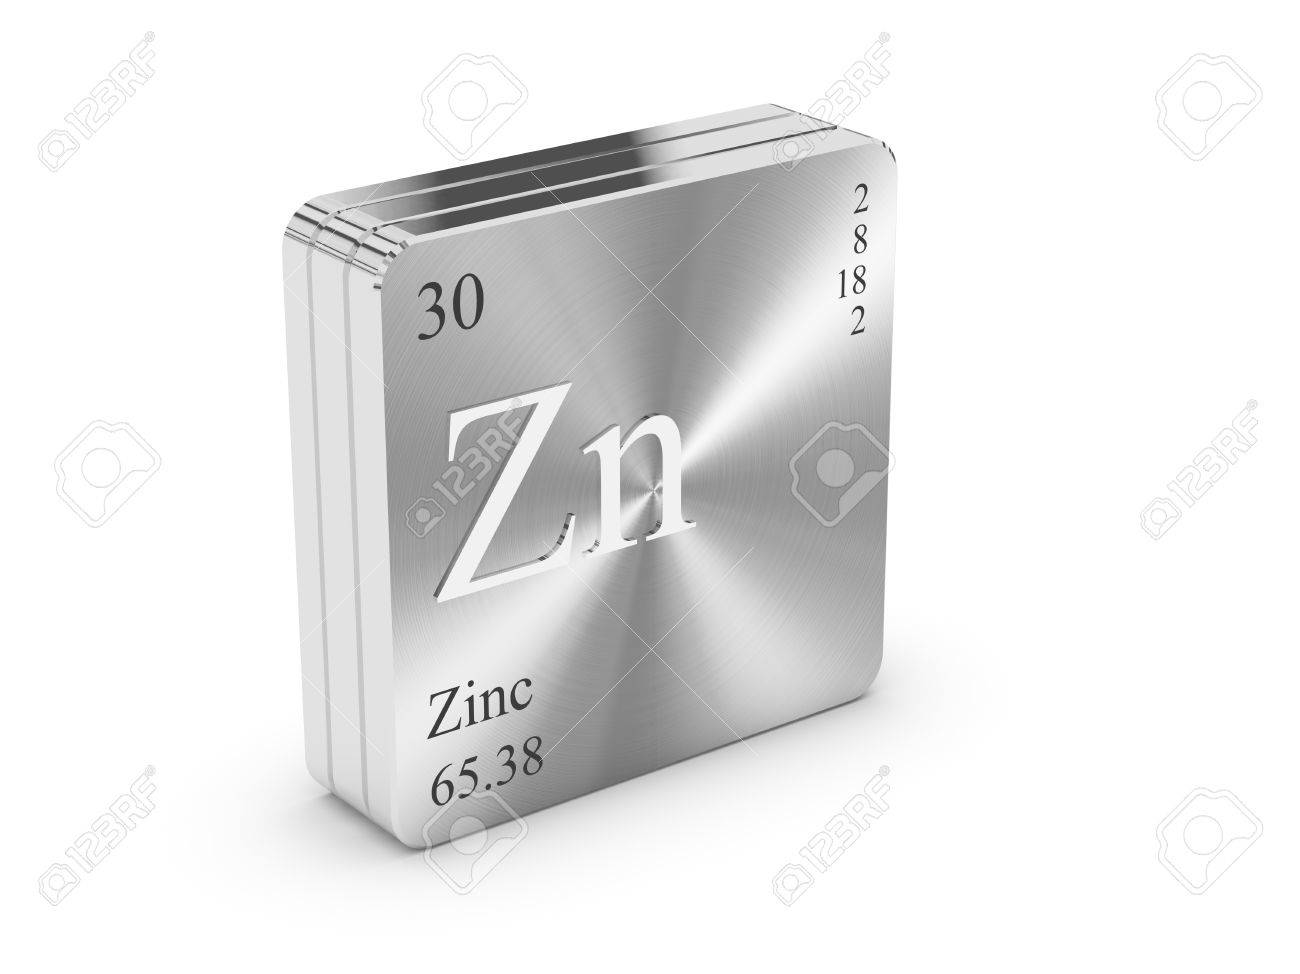 Periodic table element zinc icon caterpillar wiring diagrams zinc element of the periodic table on metal steel block stock 12083237 zinc element of the periodic table on metal steel block stock photo photo 12083237 gamestrikefo Image collections